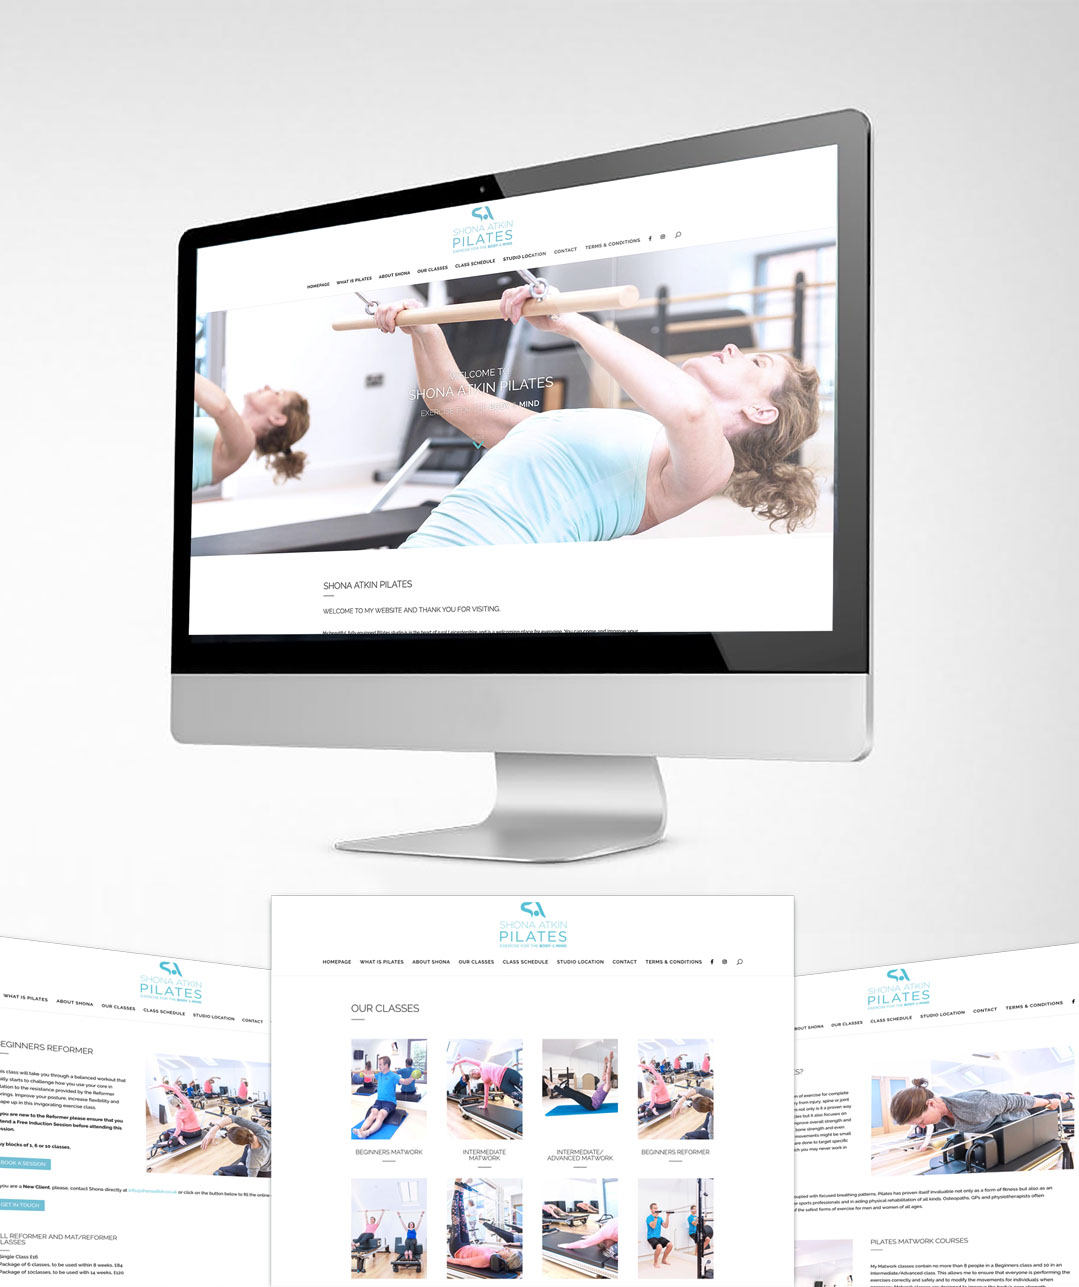 shona atkin pilates by pyrus designs